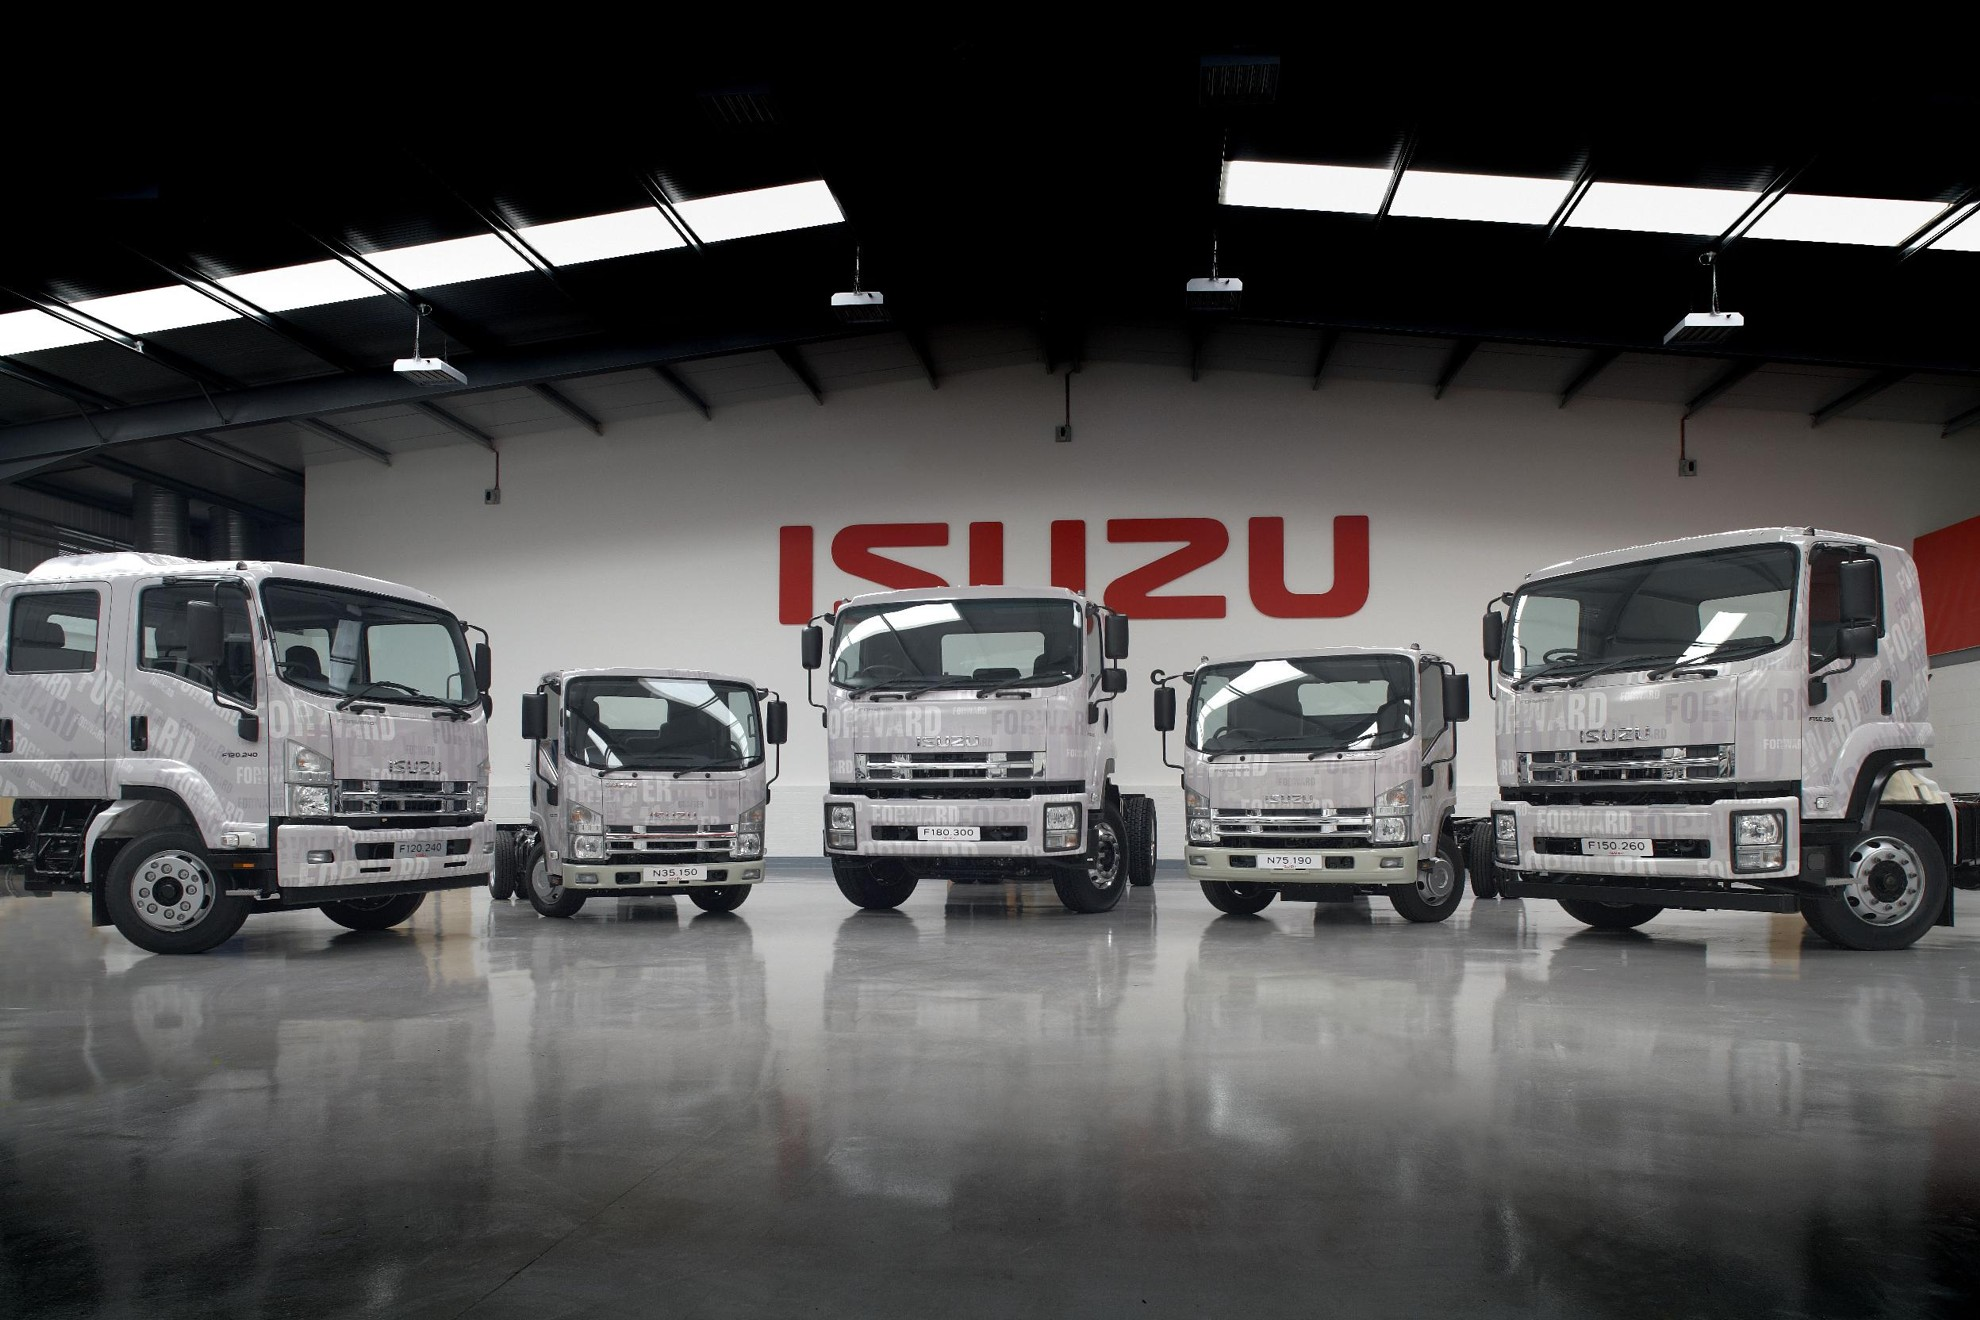 Isuzu Truck South Africa More Proudly Isuzu Than Ever